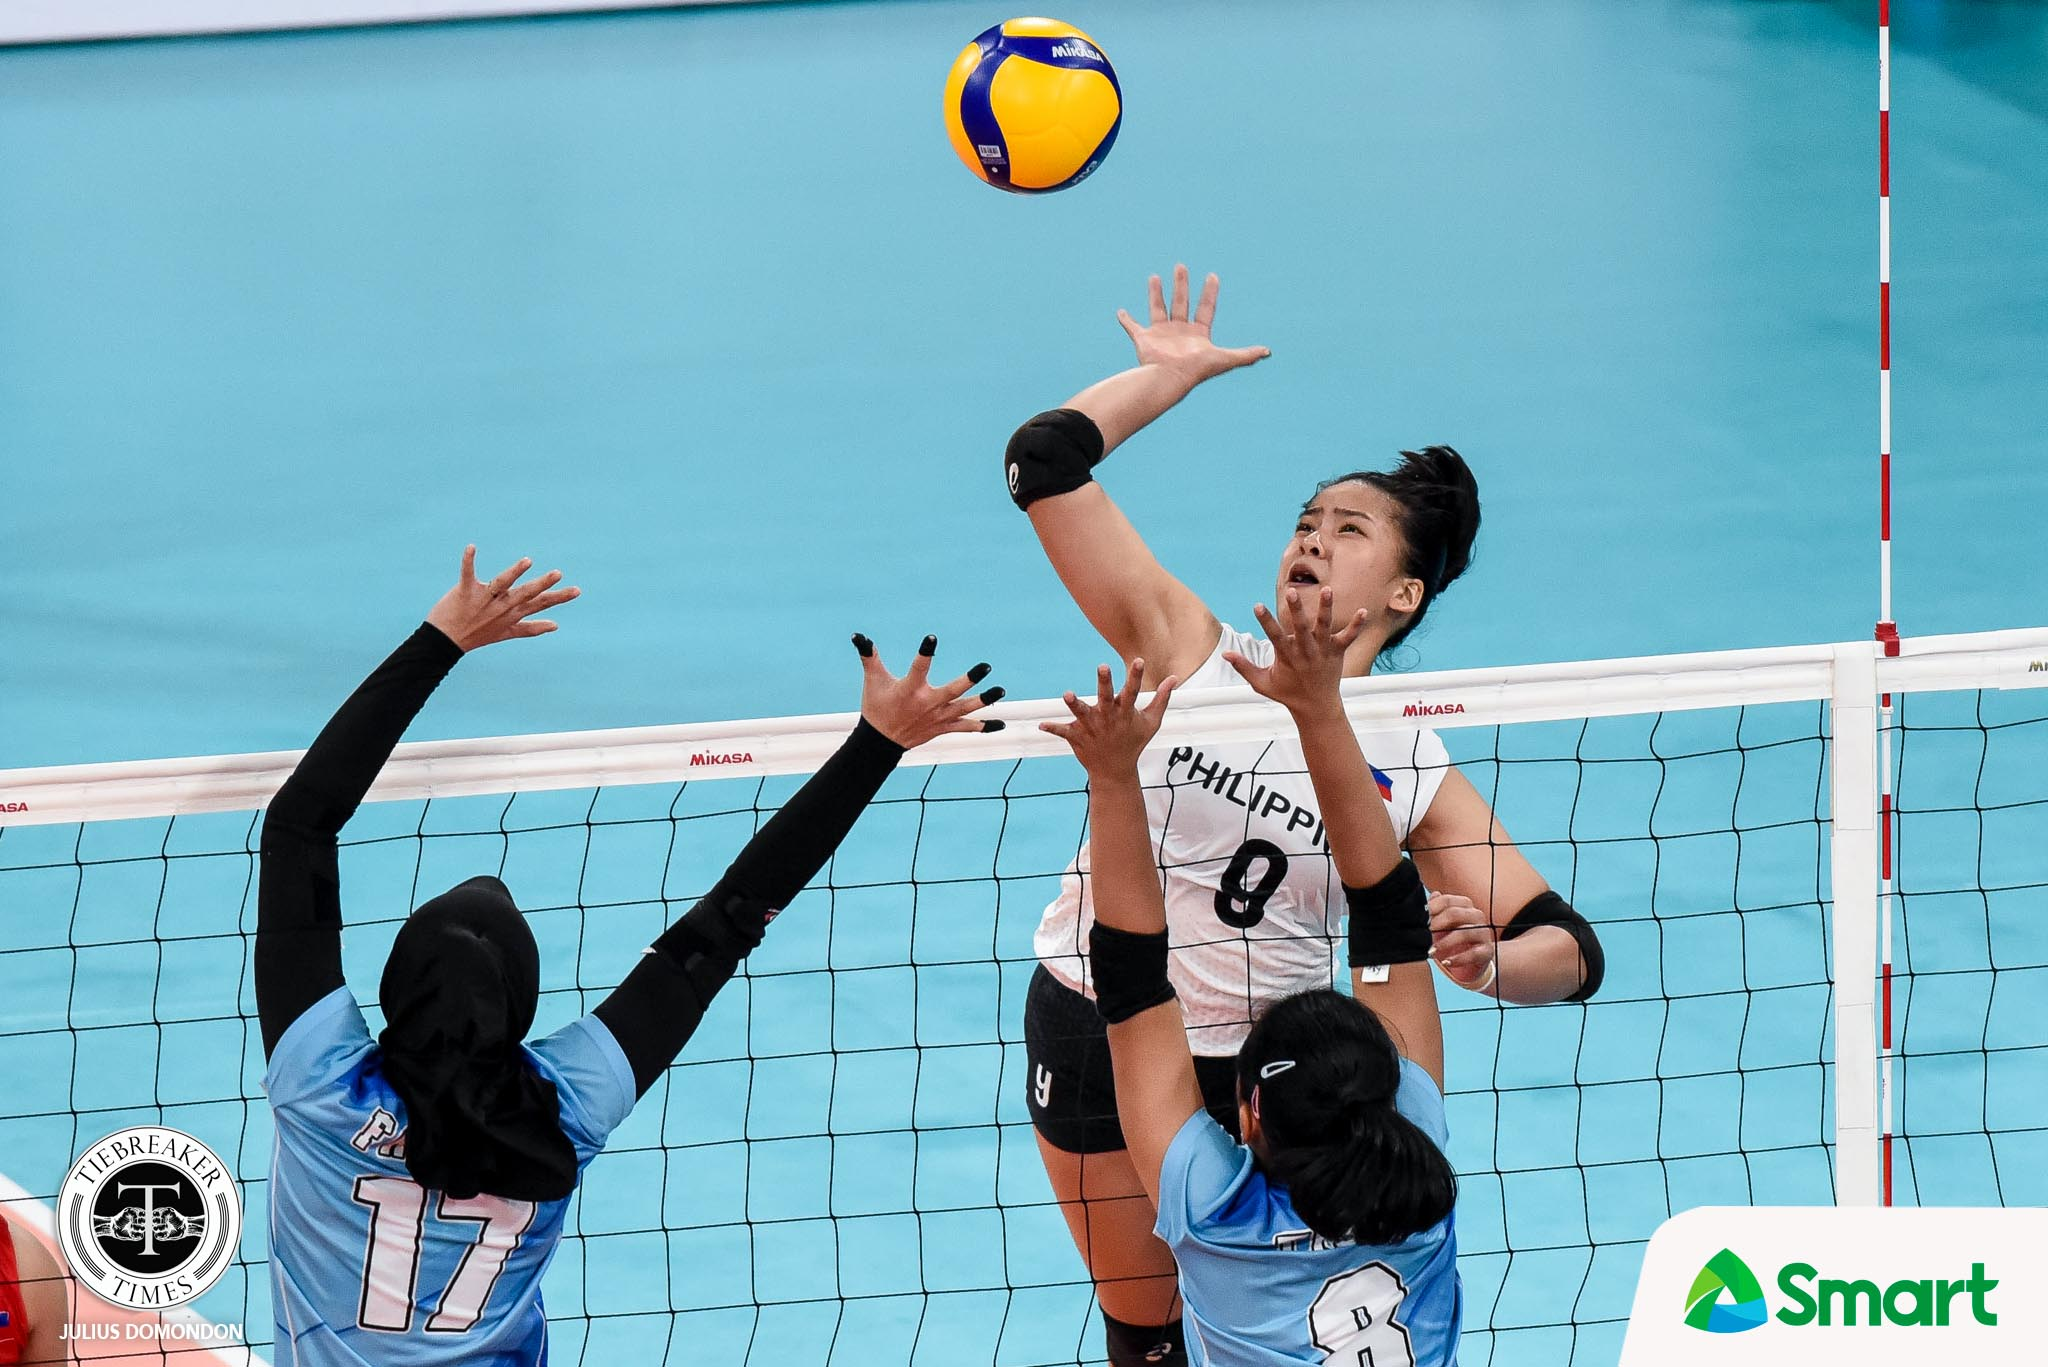 SEA-GAMES-2019-WVB-8TH-PHOTO-Eya-Laure Imee Hernandez looks to replicate magic with Eya Laure in NT 2021 SEA Games News Volleyball  - philippine sports news